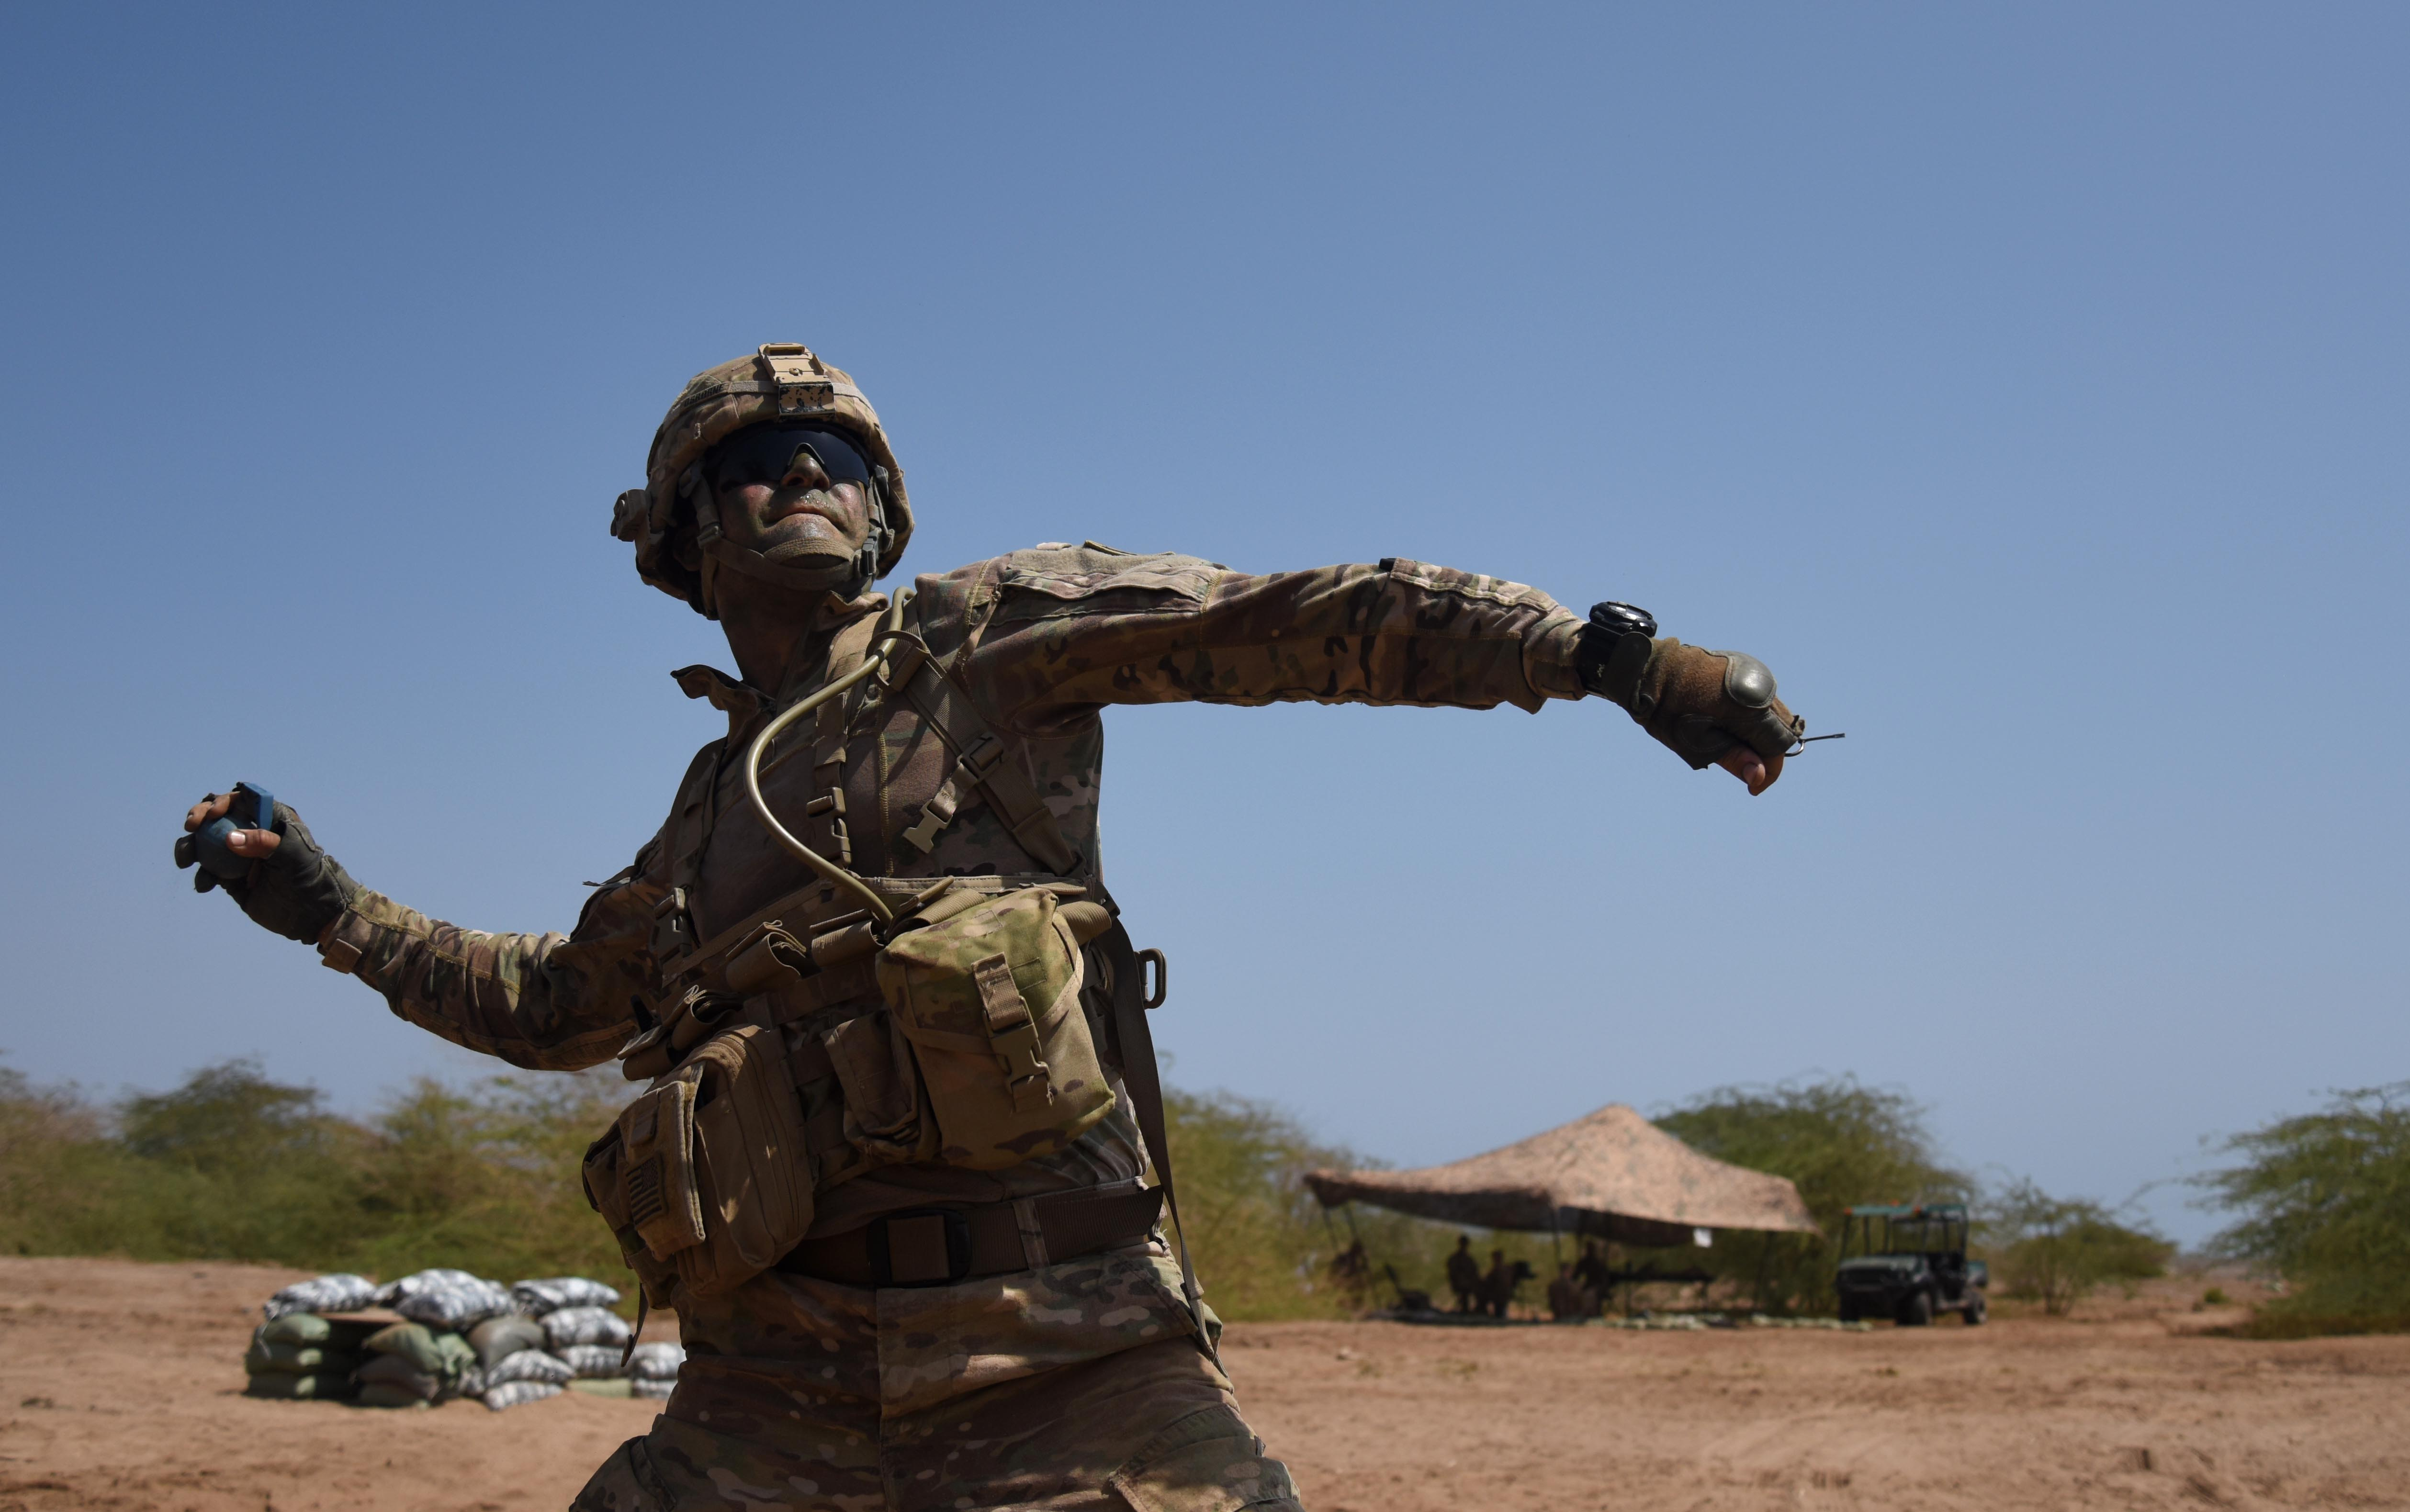 U.S. Army Expert Infantry Badge candidate throws a practice grenade March 31, 2016, during the patrolling portion of the EIB course at Camp Lemonnier, Djibouti. After completing the grenade test, candidates had to complete two different grenade application tests where they threw them 35 feet and into a simulated enemy bunker. (U.S. Air Force photo by Staff Sgt. Kate Thornton)